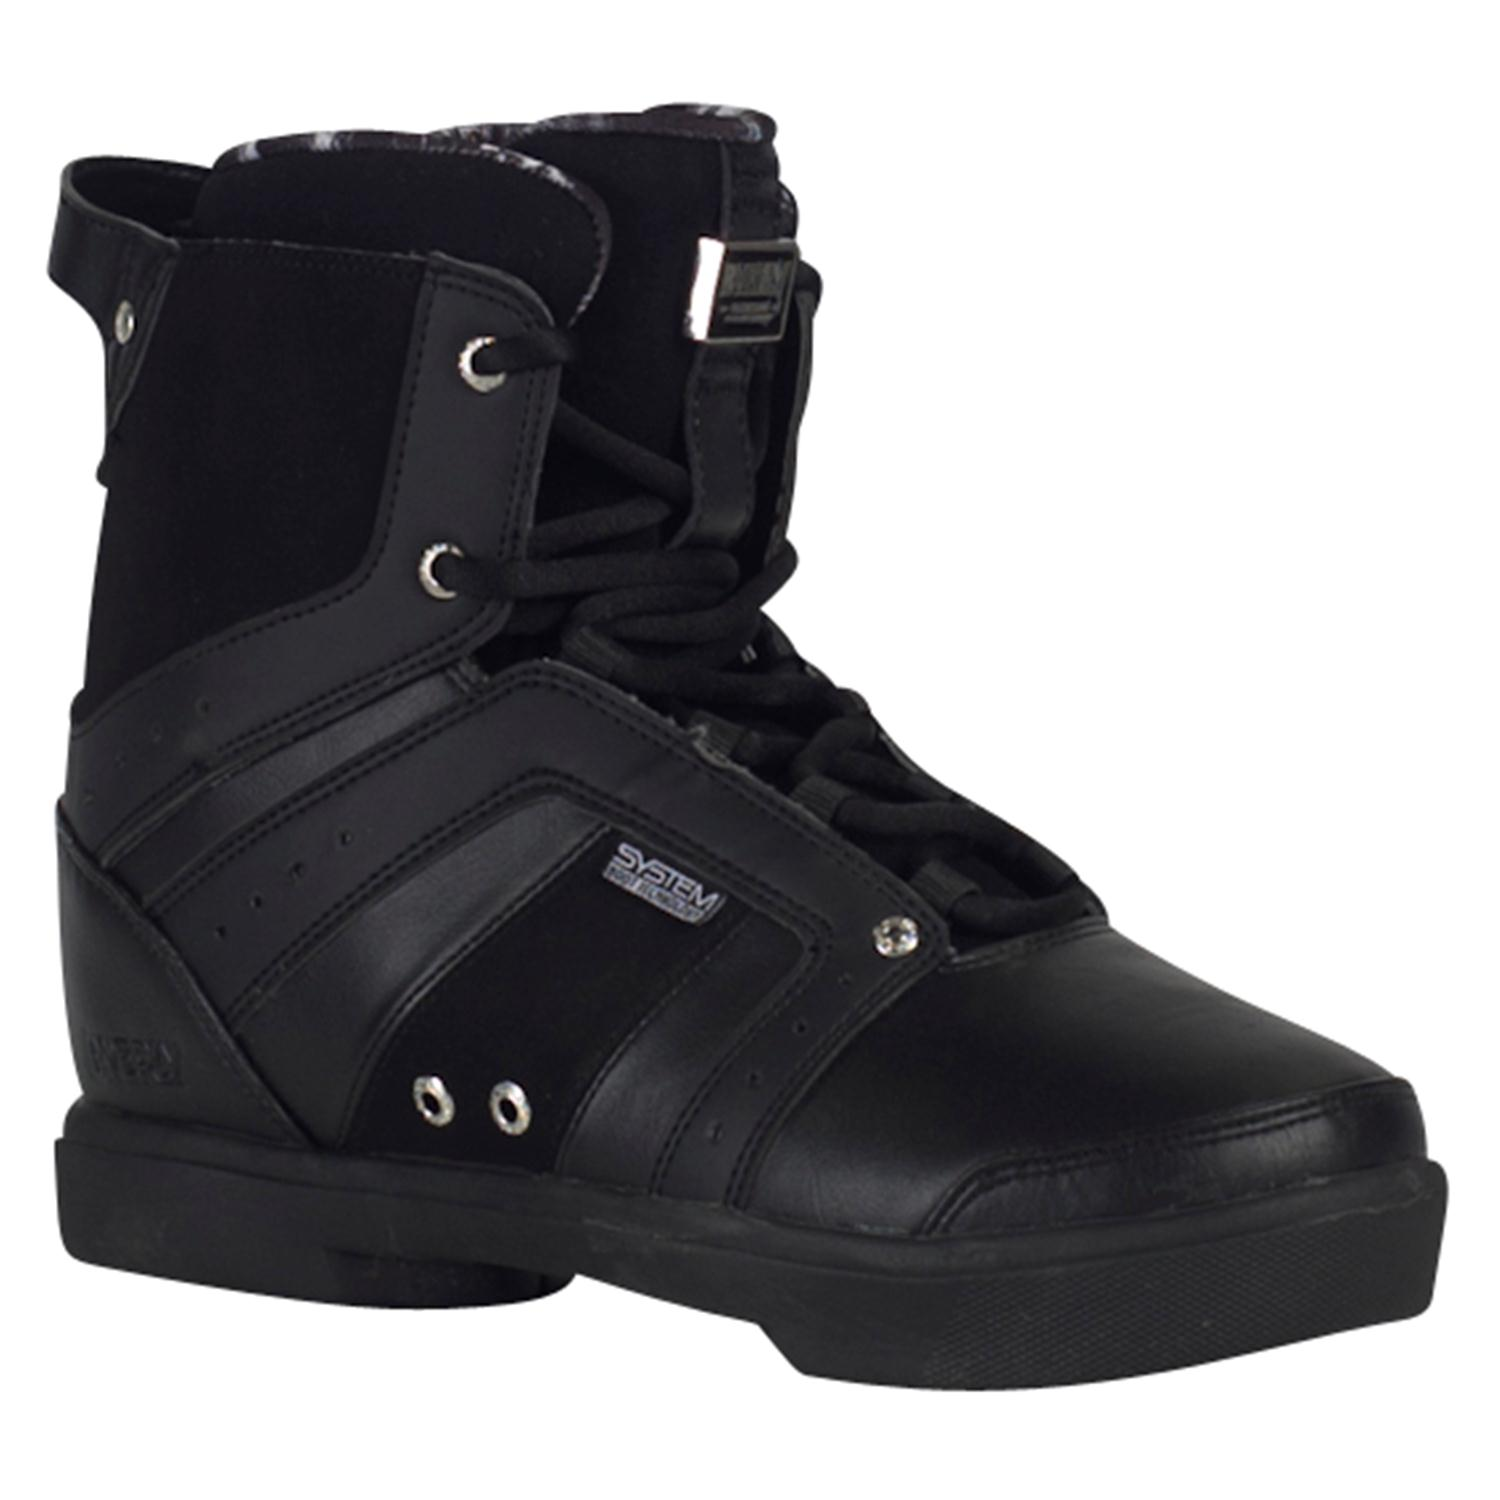 Byerly System Boots + System Bindings 2013